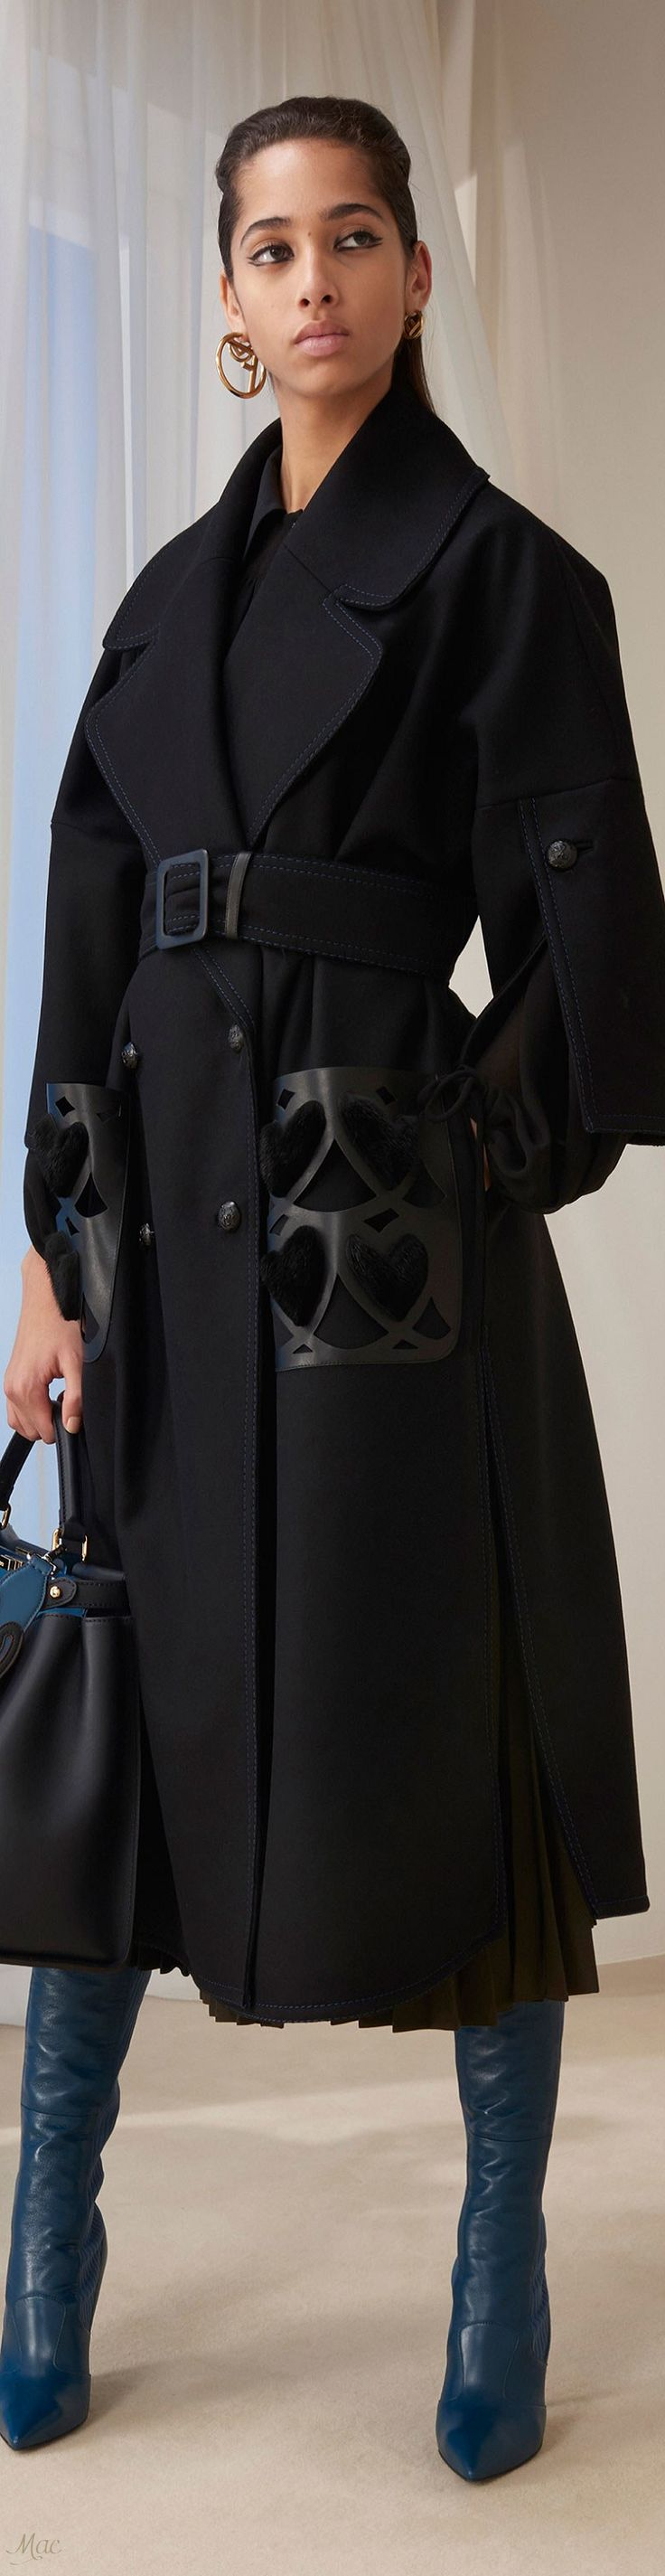 best Style images on Pinterest  Fashion show Walkway and Coats